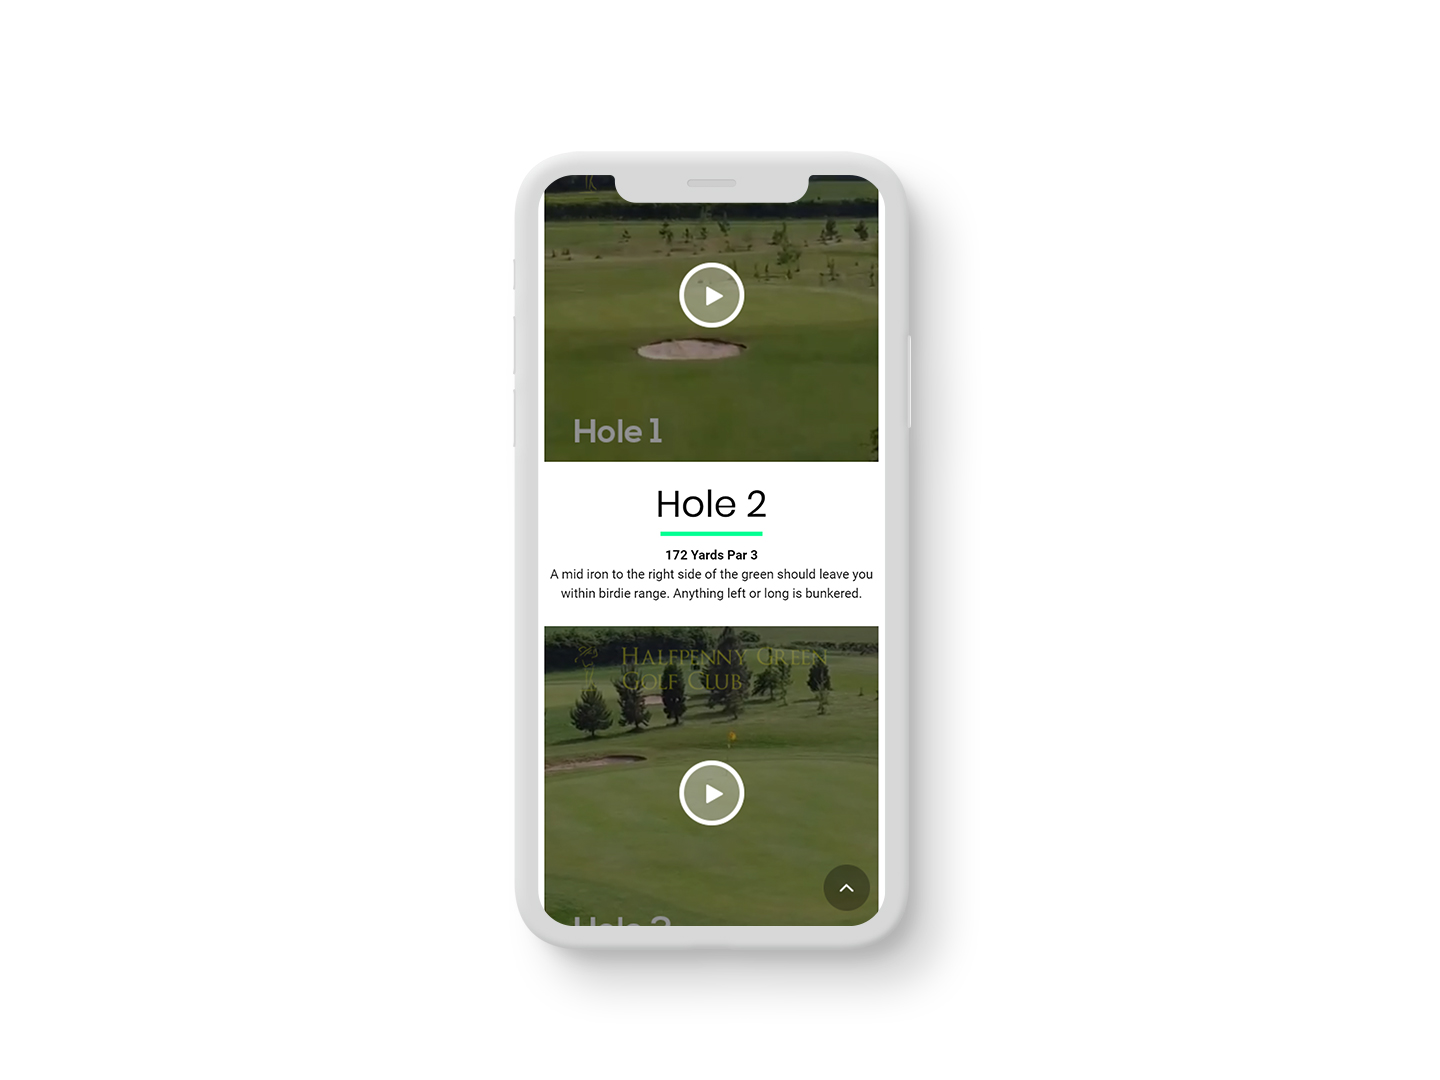 Halfpenny Green Golf Club & Driving Range   Full service Digital implementation: - Digital strategy - Analysis - Optimisation - SEO - PPC - Content writing - Social Media marketing - Video branded content - Geo-targeting